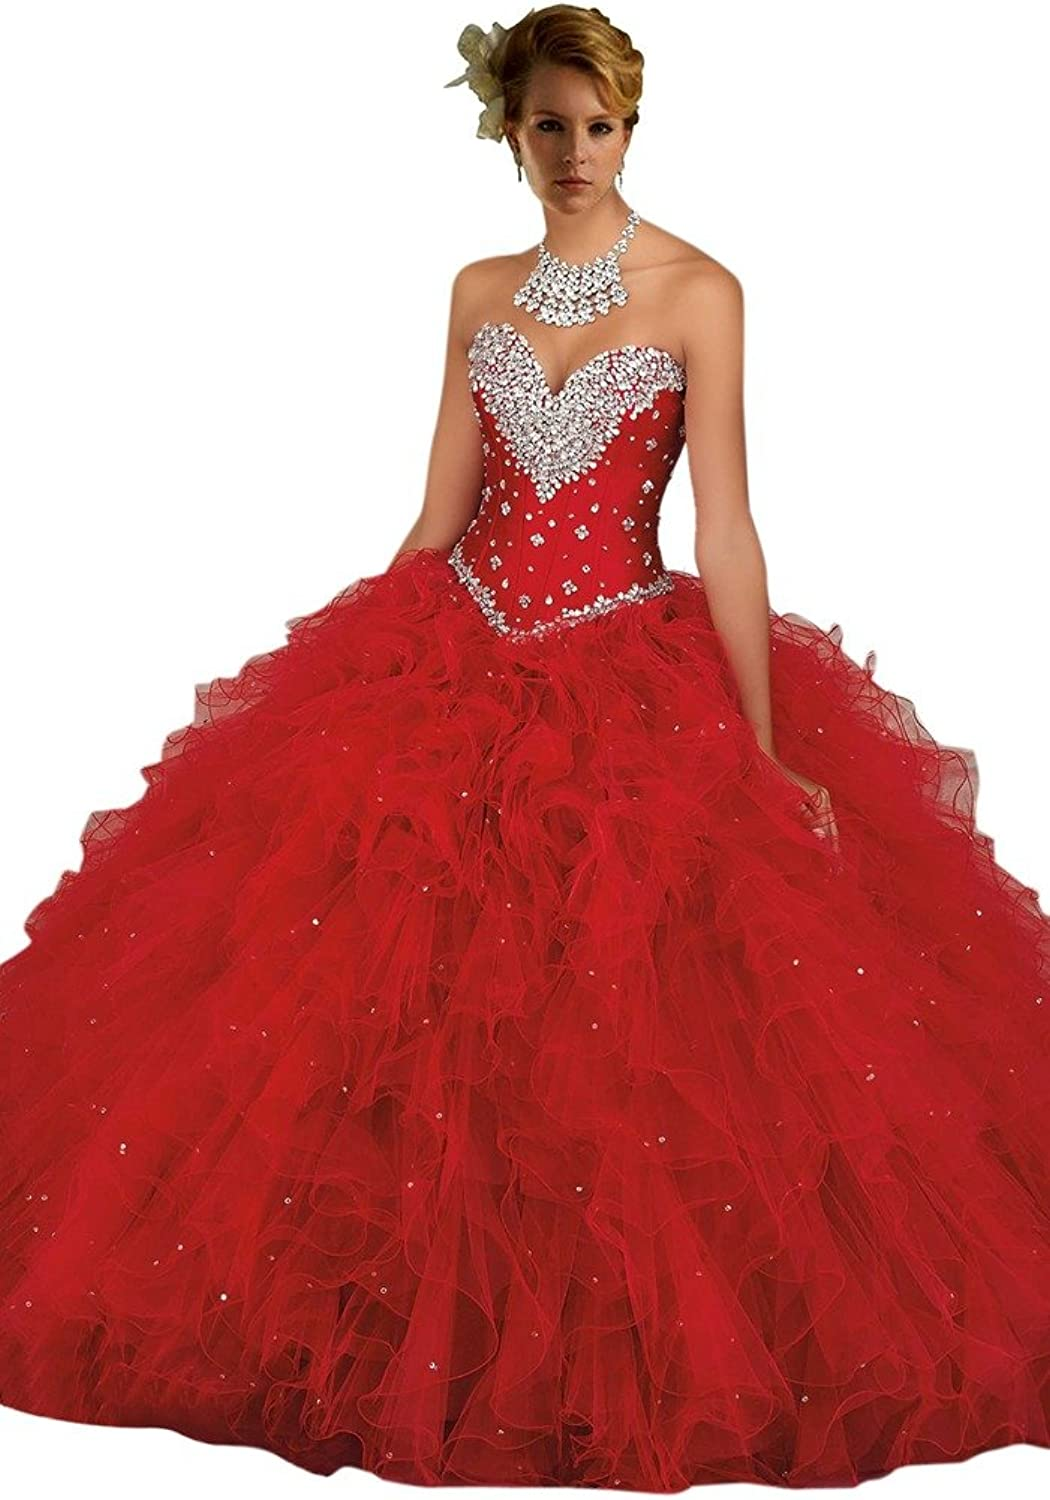 Dearta Women's Crystal Ruffles Pleated Sweetheart Quinceanera Dresses Ball Gowns